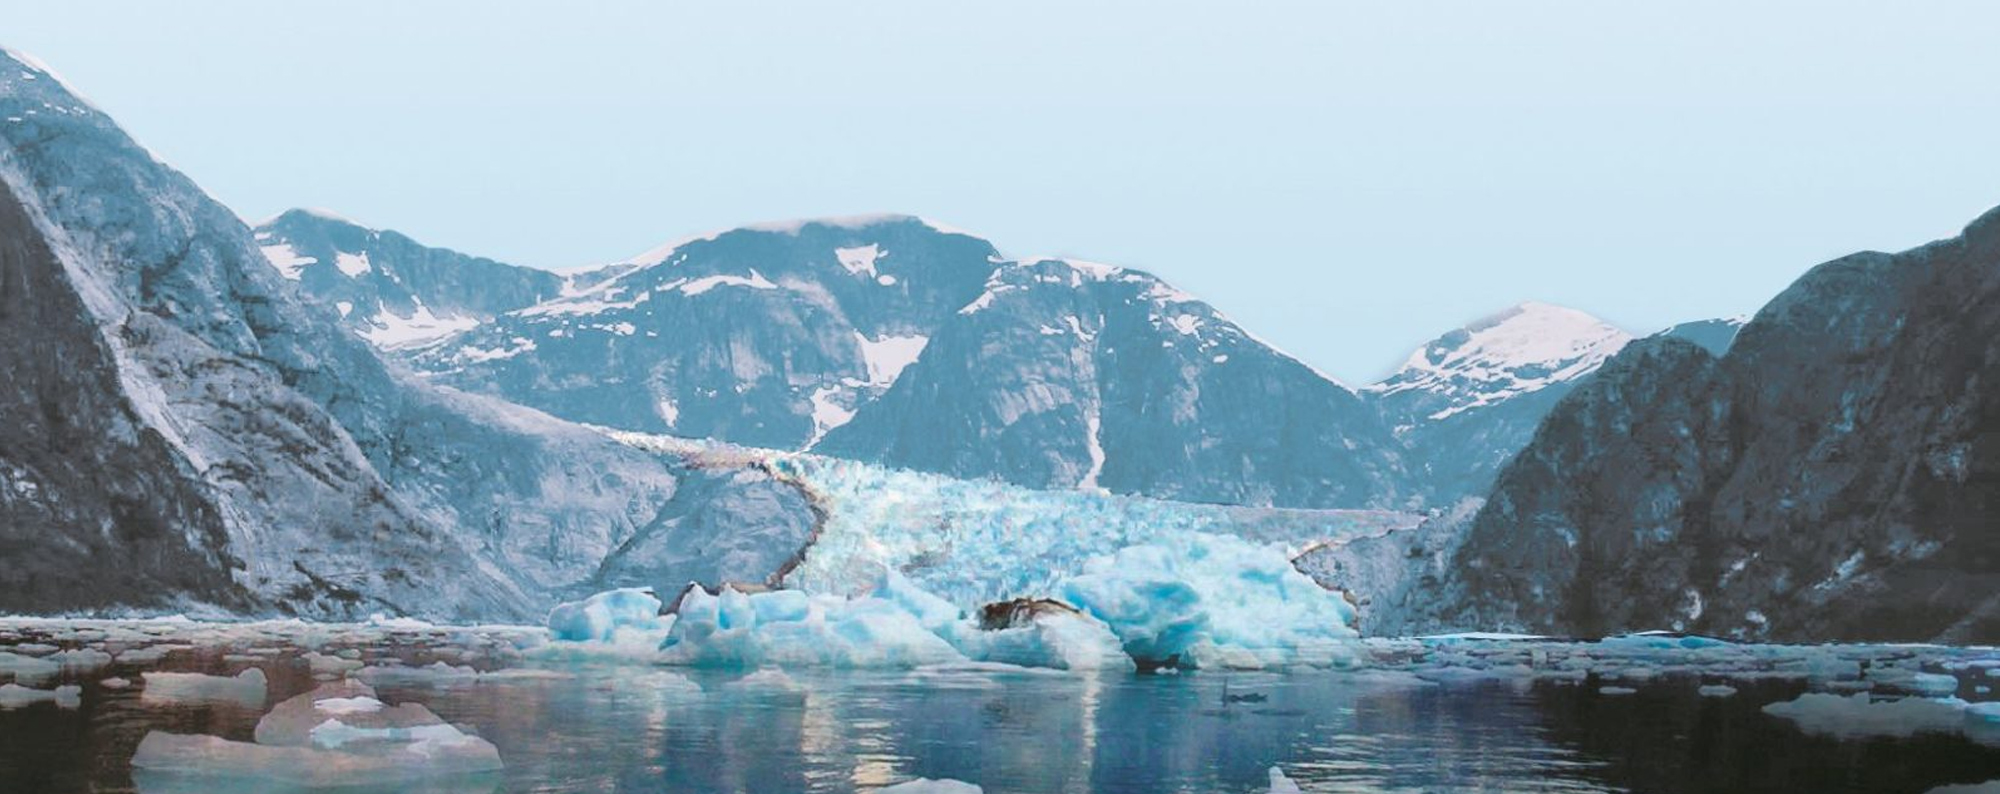 Alaska's Glaciers and Inside Passage